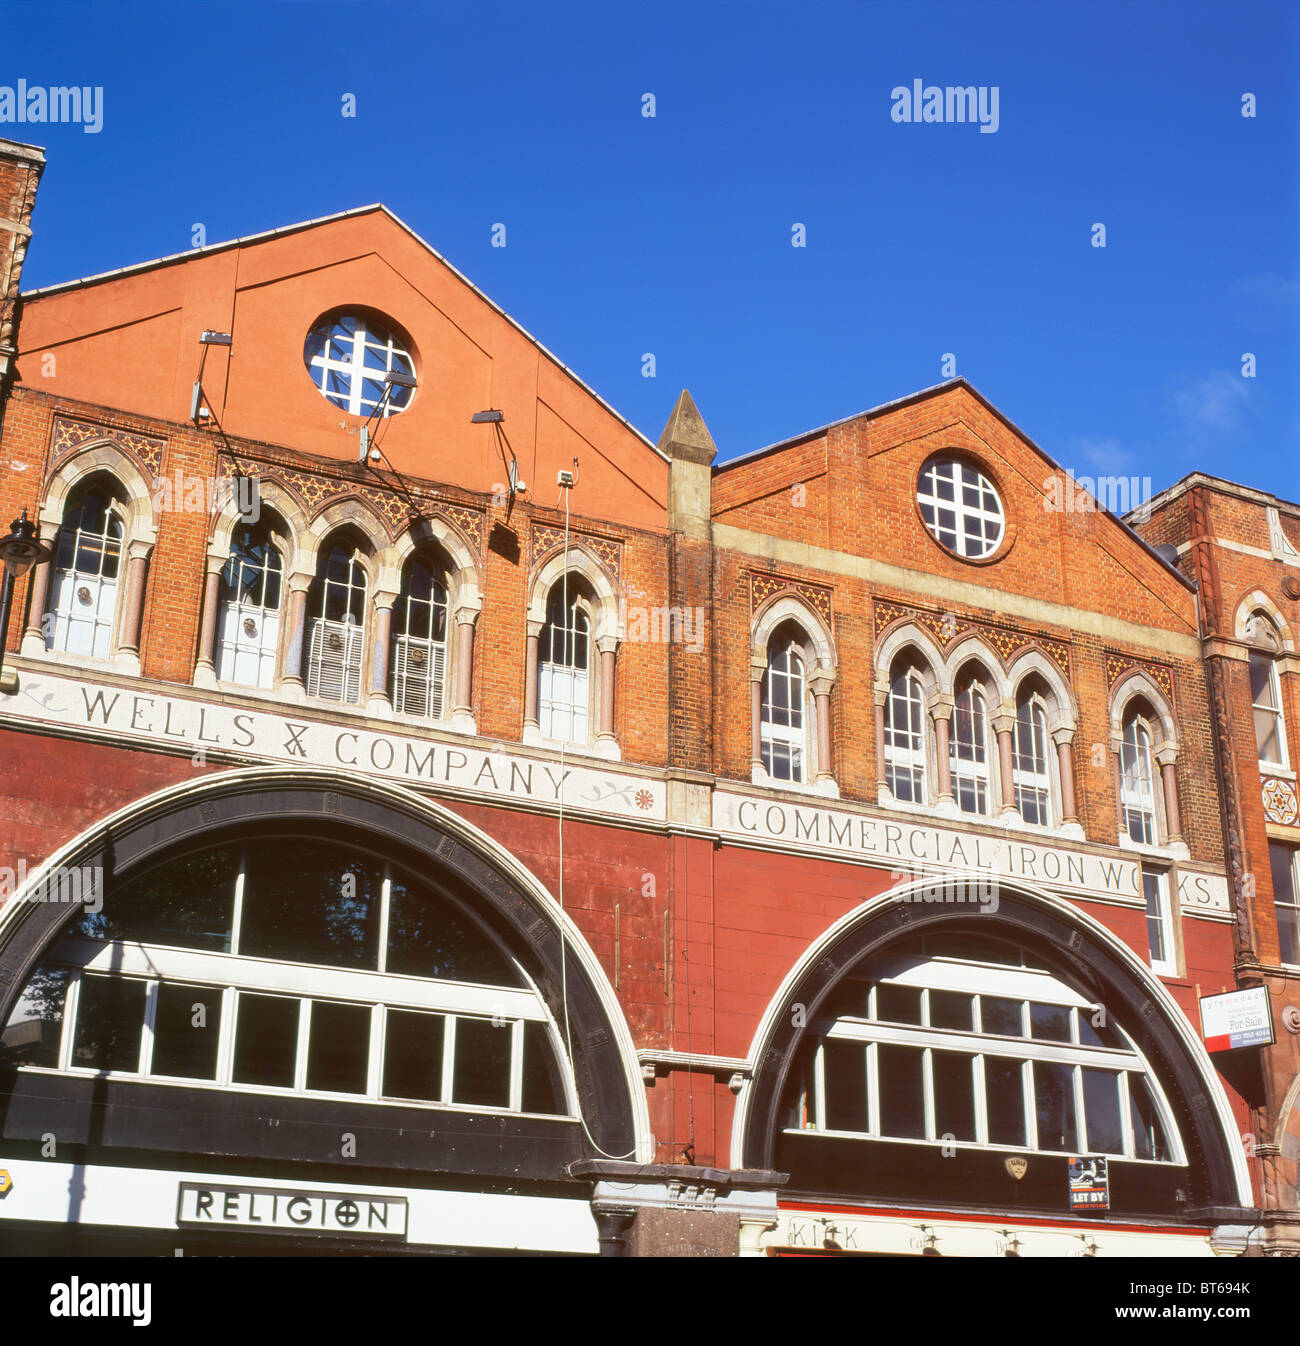 Wells and Company Commercial Ironworks factory urban loft building property to let in Shoreditch East London, Britain - Stock Image